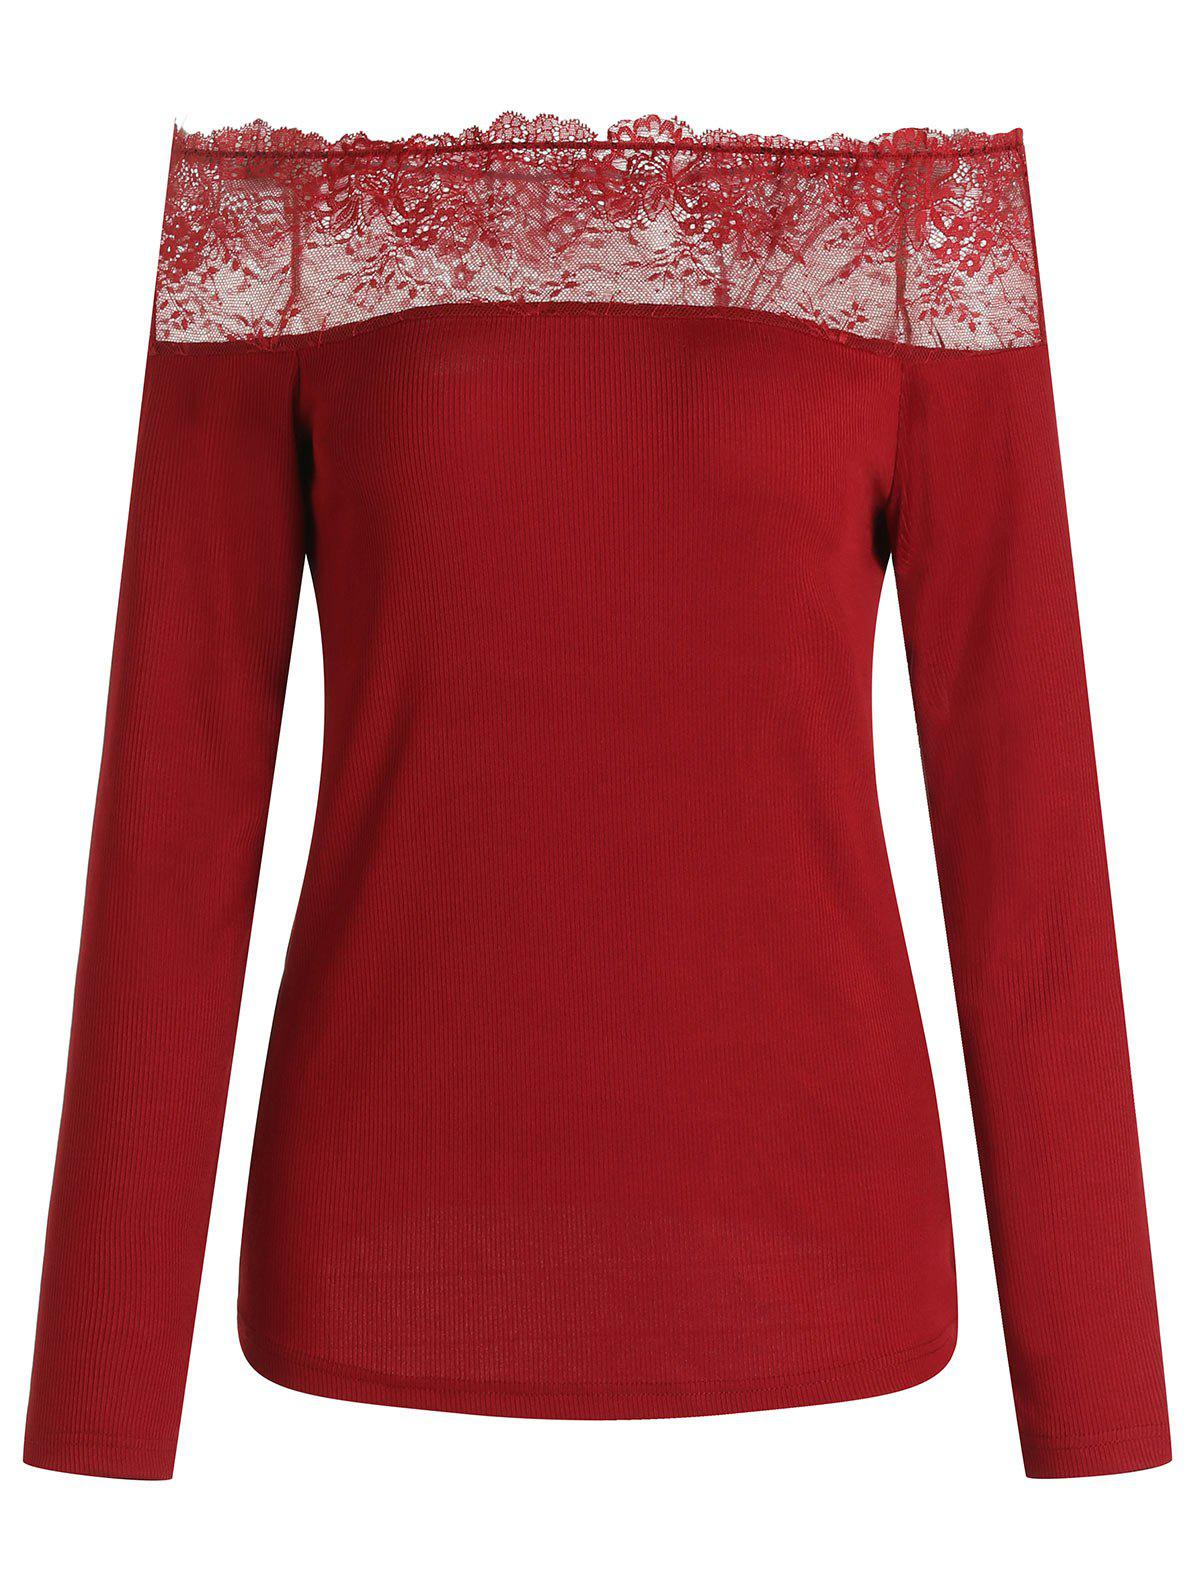 Fancy Off Shoulder Lace Insert Ribbed Knit Top